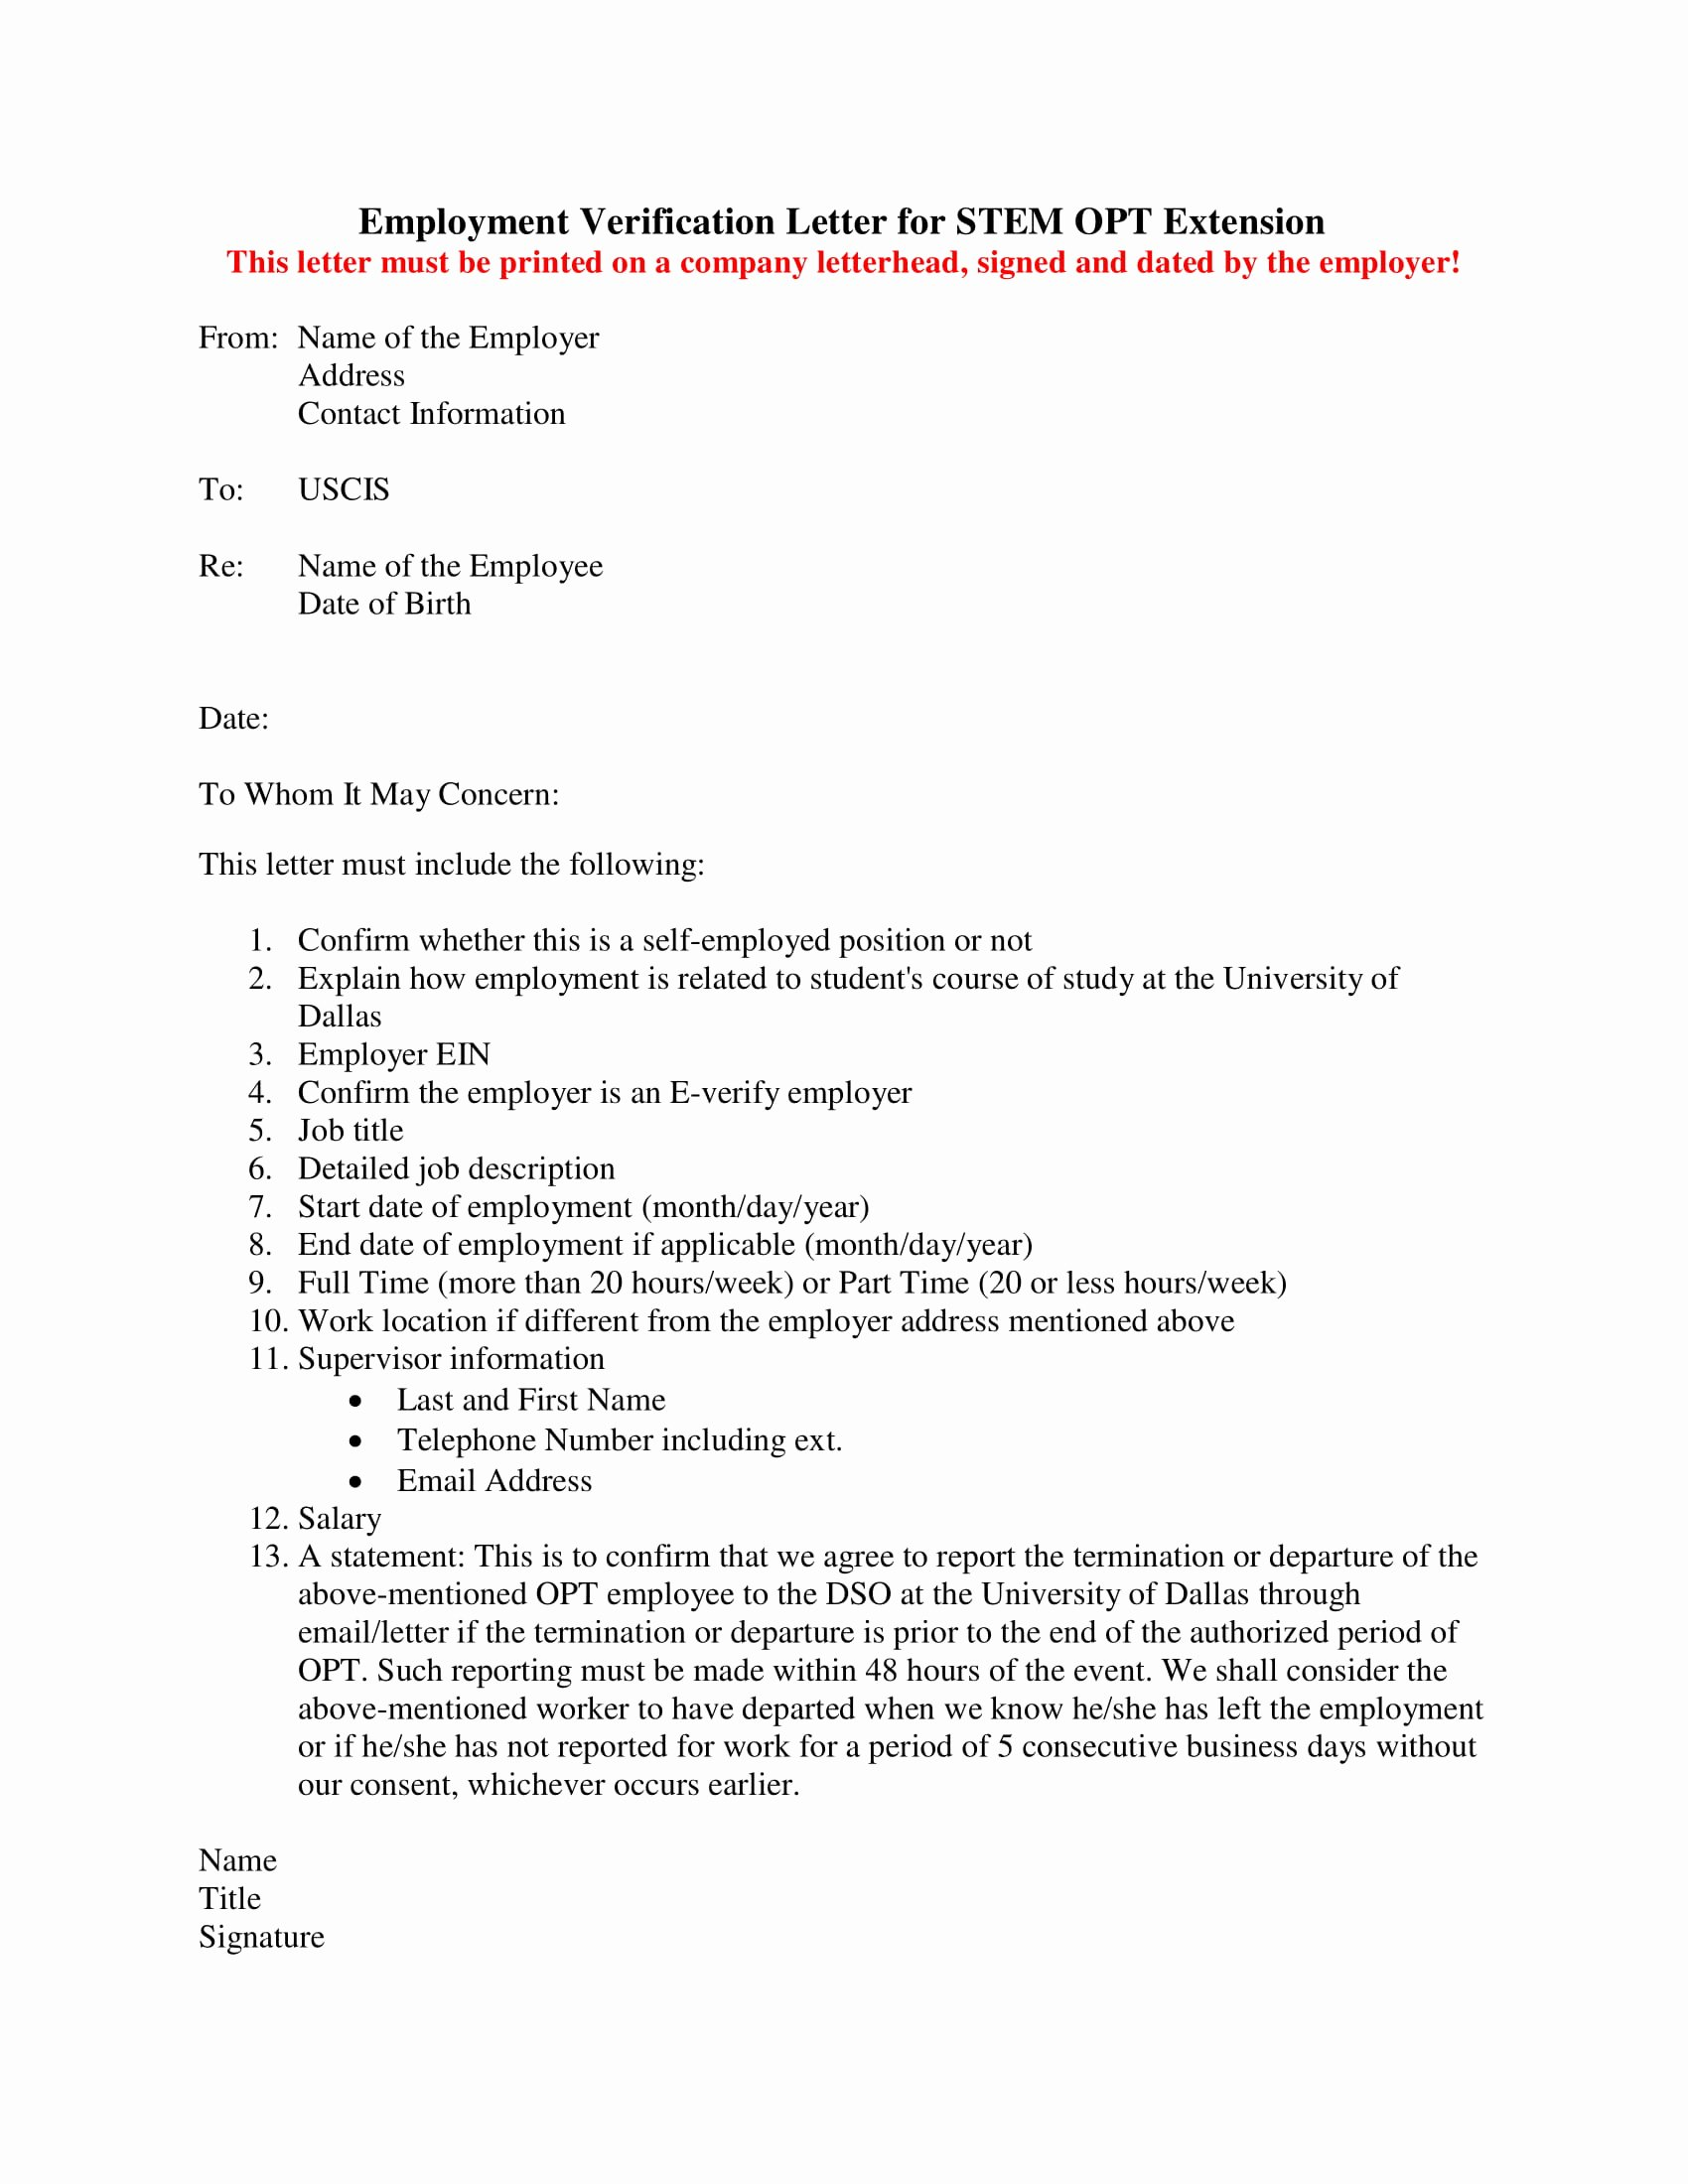 Letter to Uscis format Unique 14 Employment Verification Letter Examples Pdf Doc